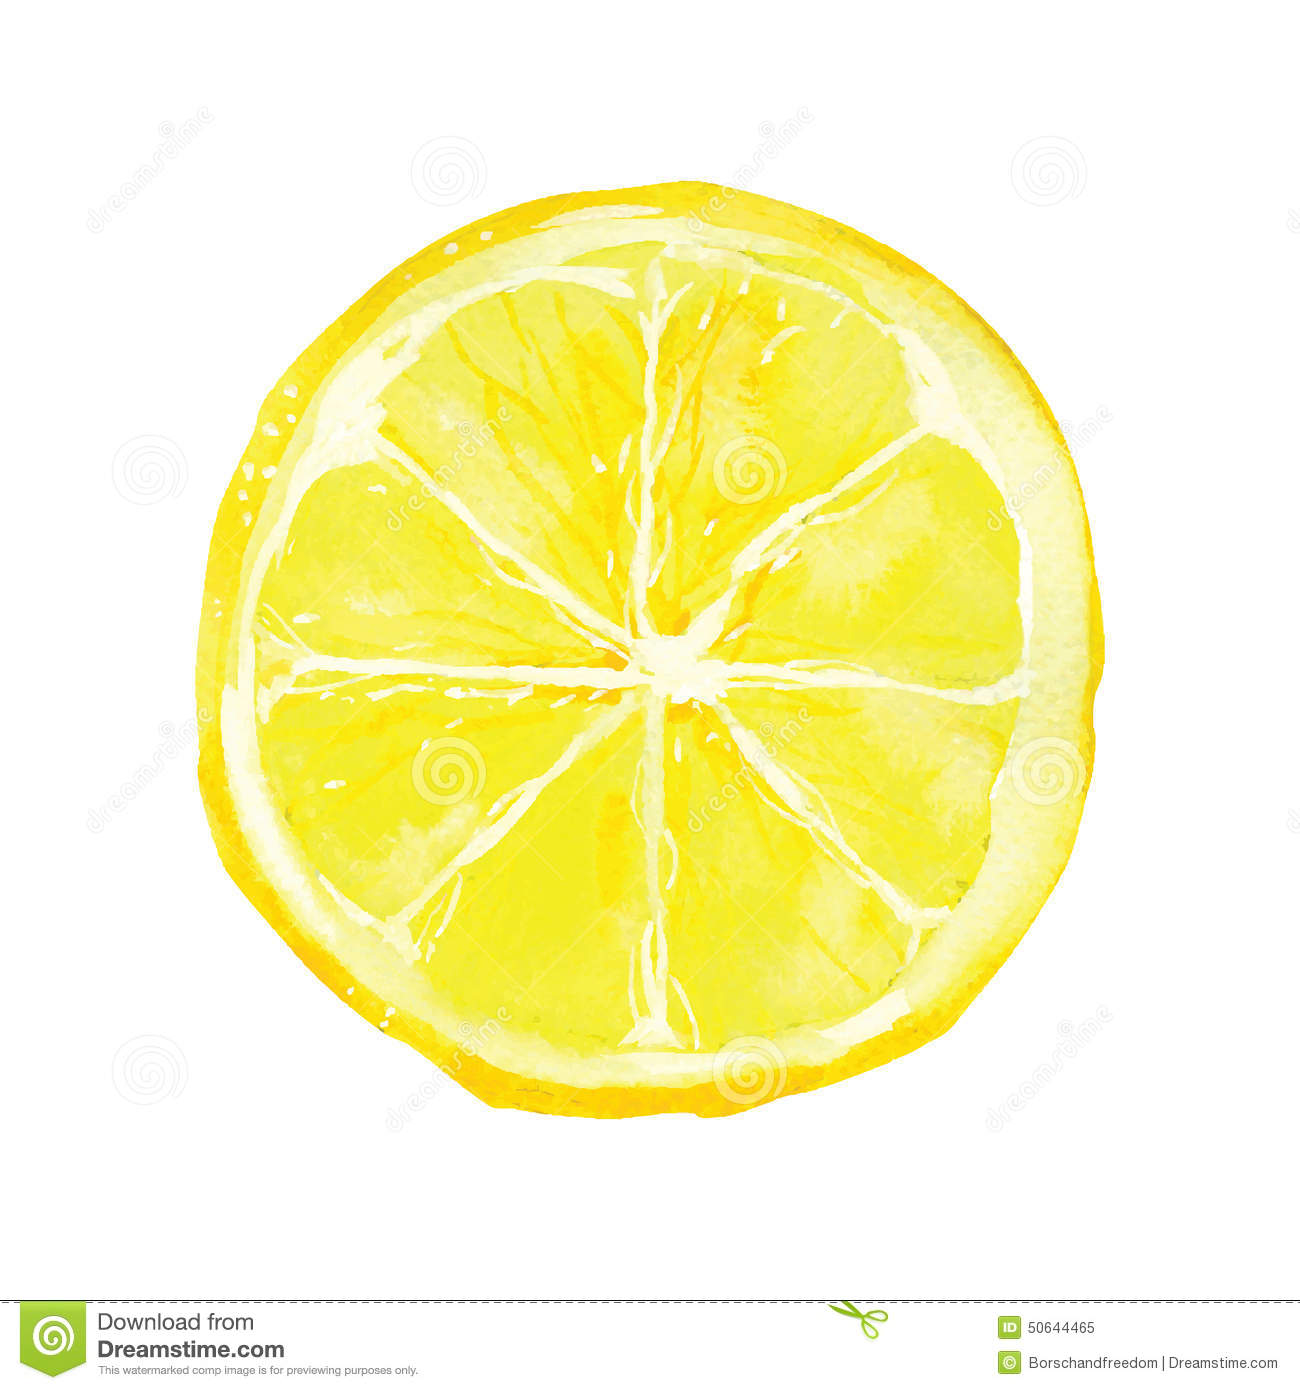 Slice of lemon drawing by watercolor, hand drawn vector illustration.